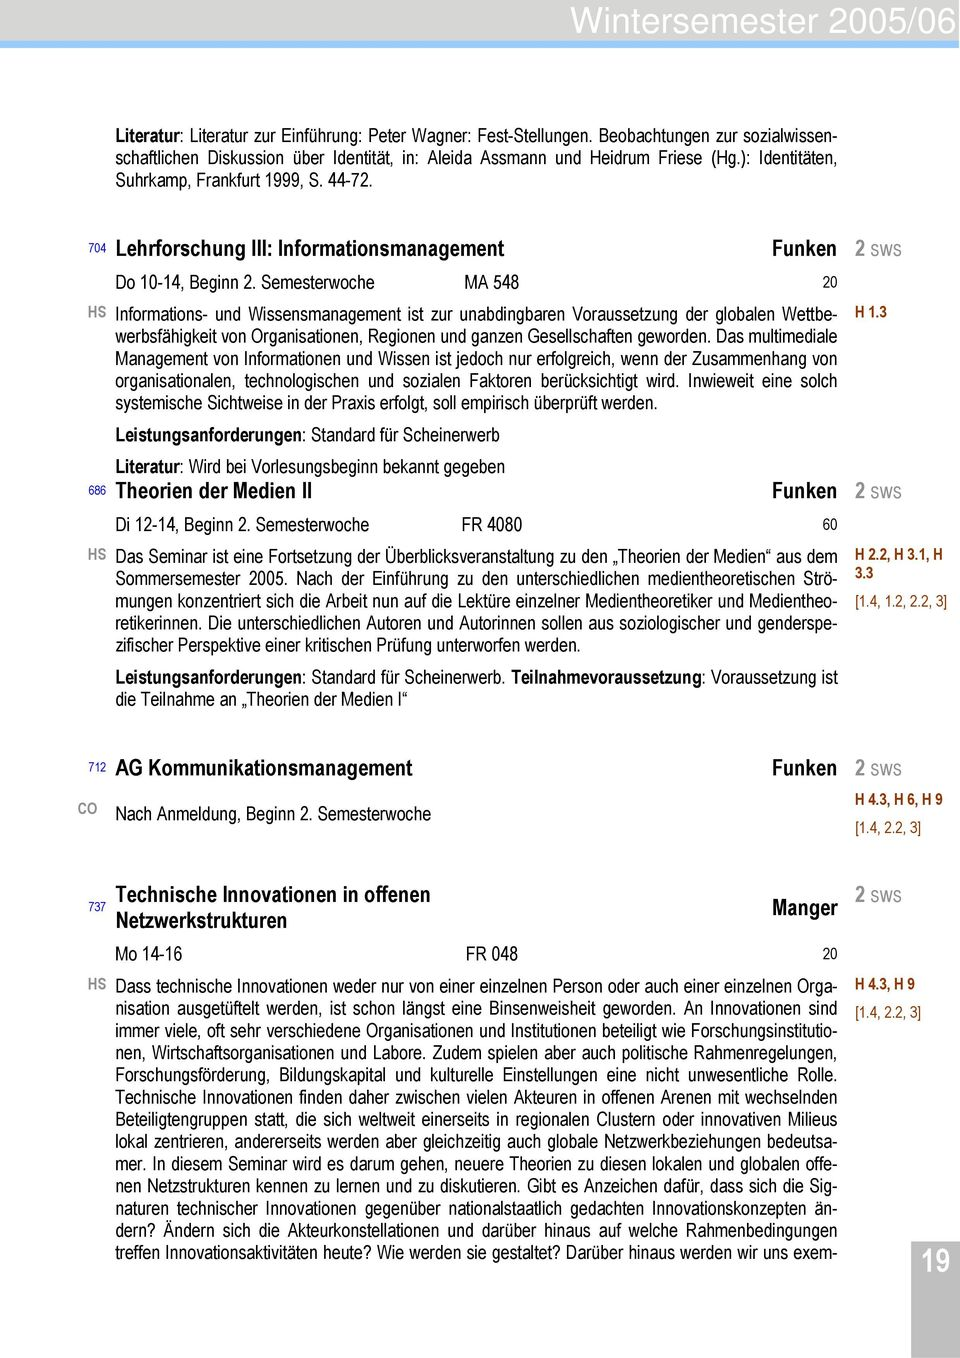 704 Lehrforschung III: Informationsmanagement Funken 2 sws Do 10-14, Beginn 2.